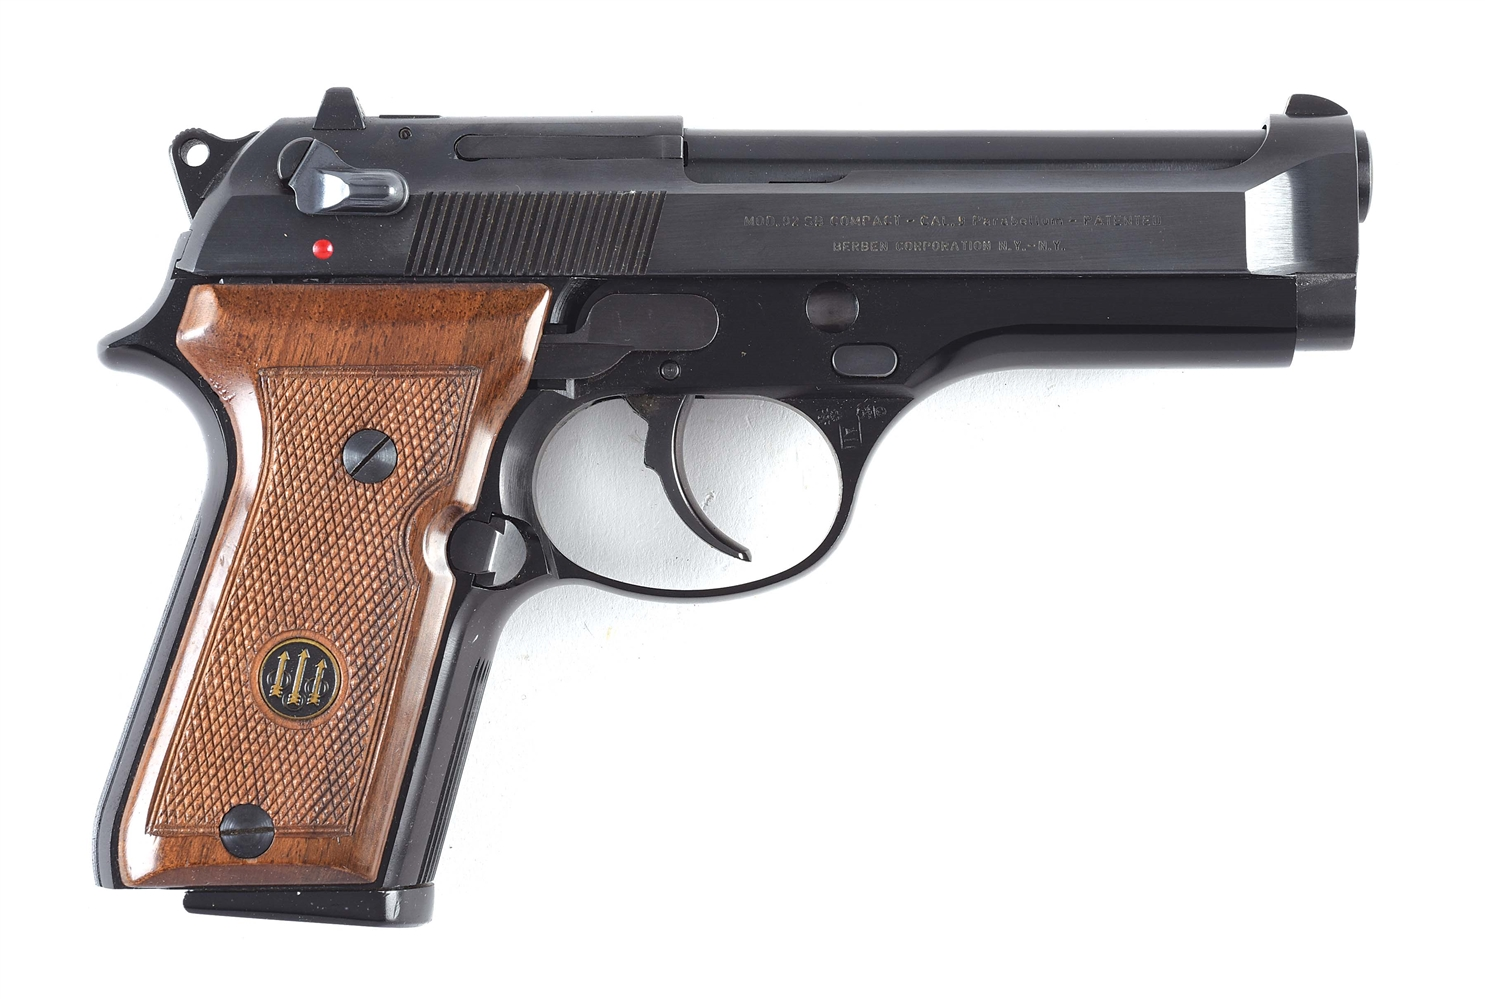 (M) Beretta 92SBC Semi-Automatic Pistol, Documented Use At The 1984 Olympics.